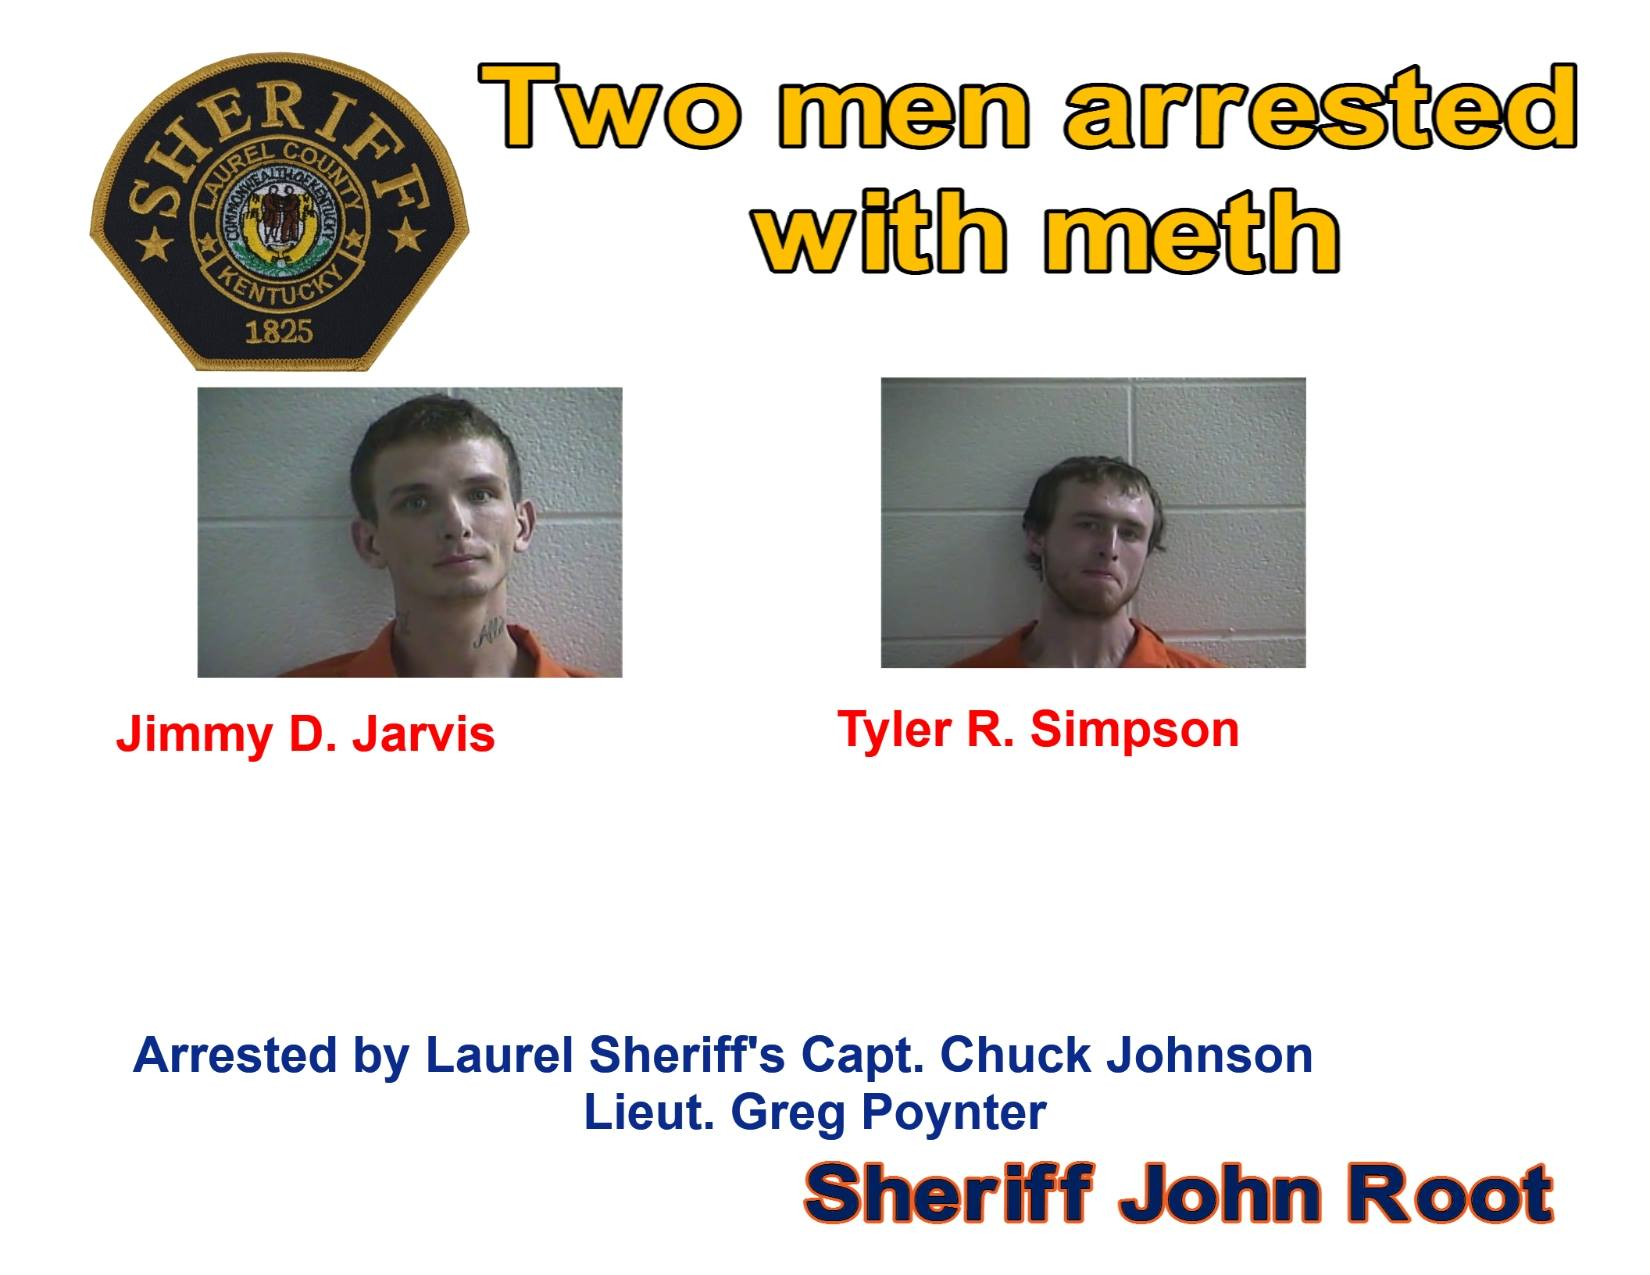 Traffic Stop In London Leads To Drug Arrests